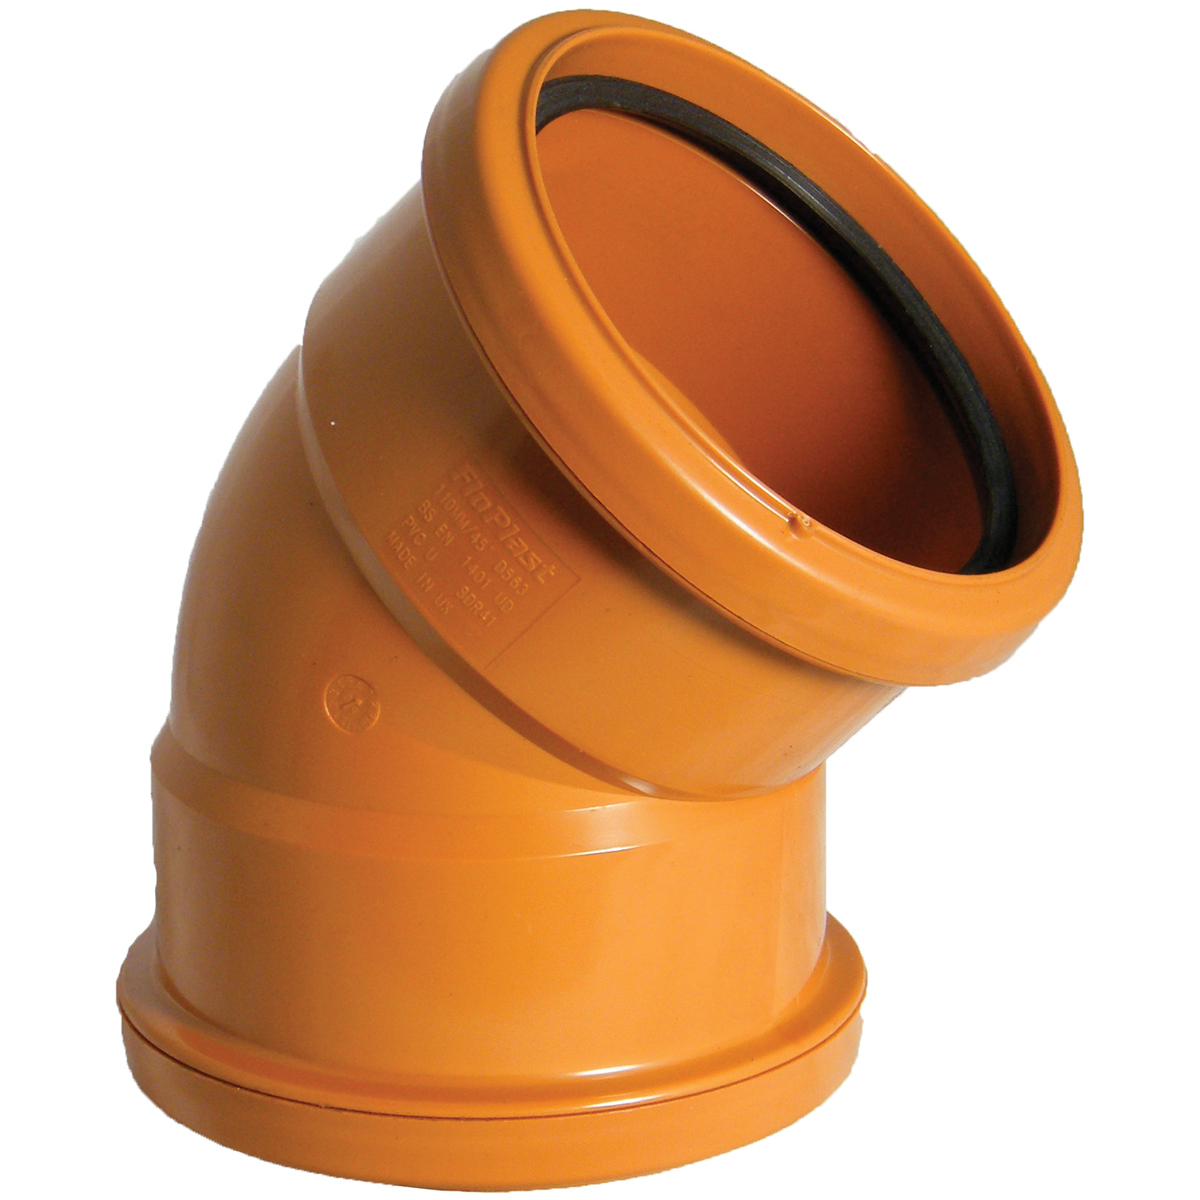 Floplast D563 45* Bend Double Socket 110mm Underground Drainage